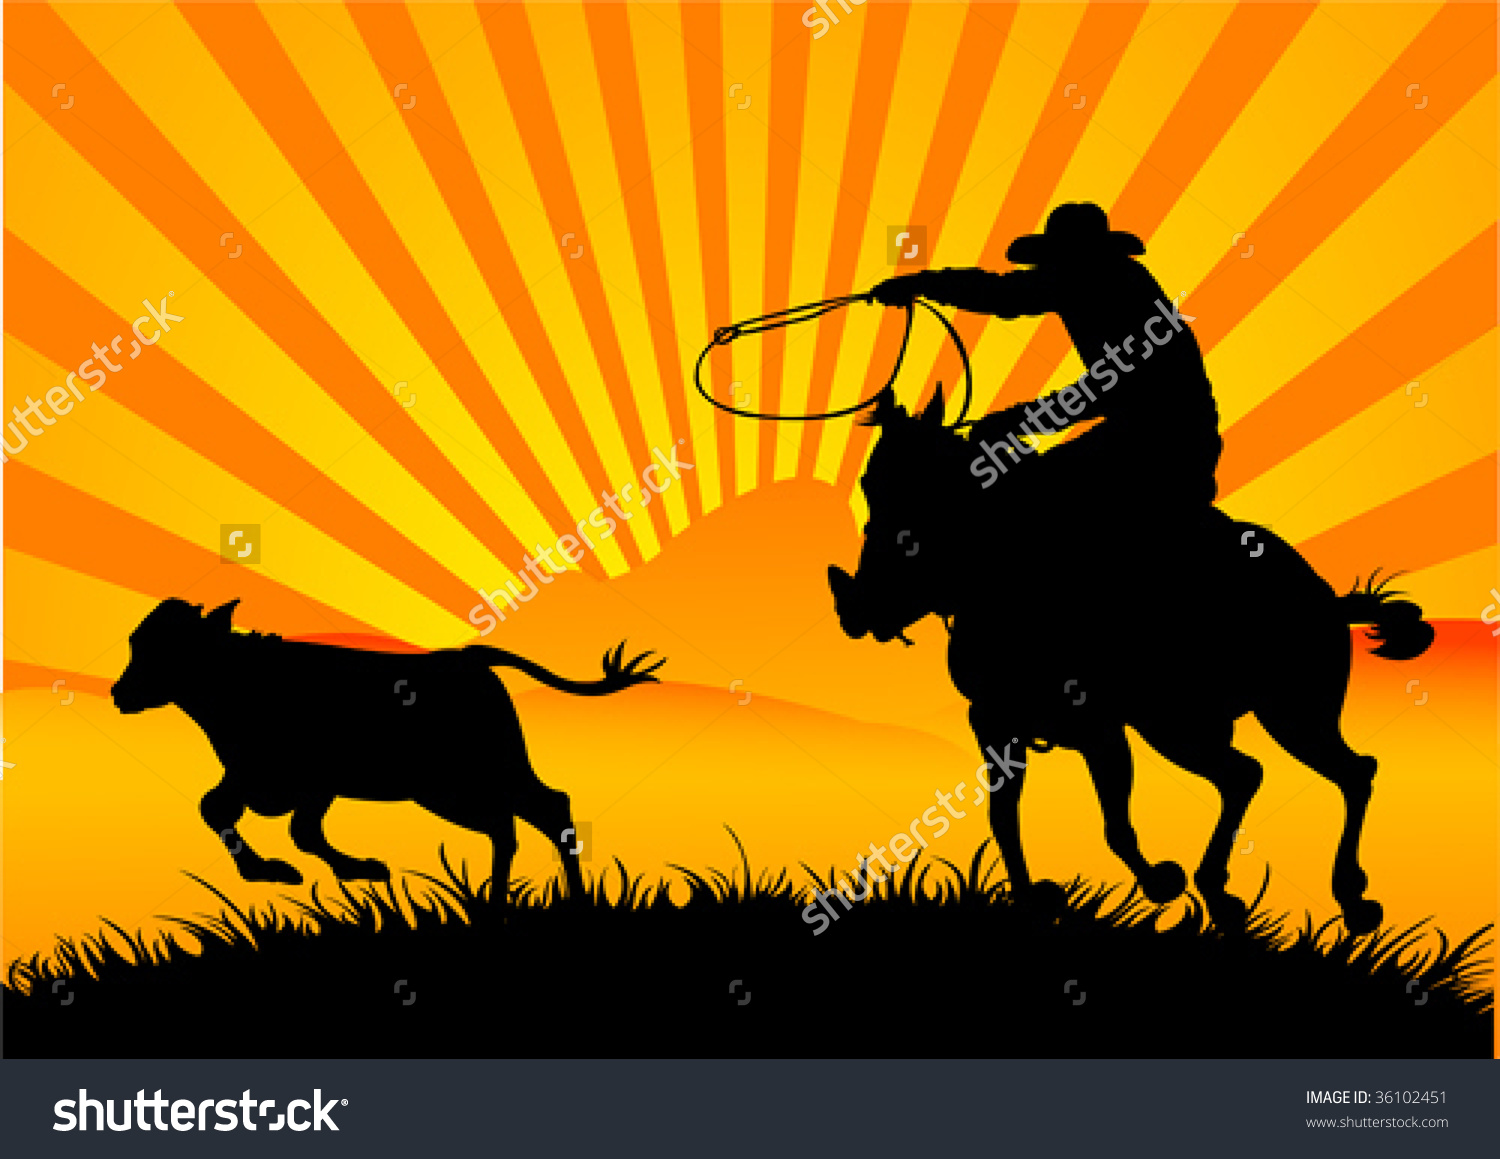 Vector Silhouette Cowboy Roping Calf Stock Vector 36102451.